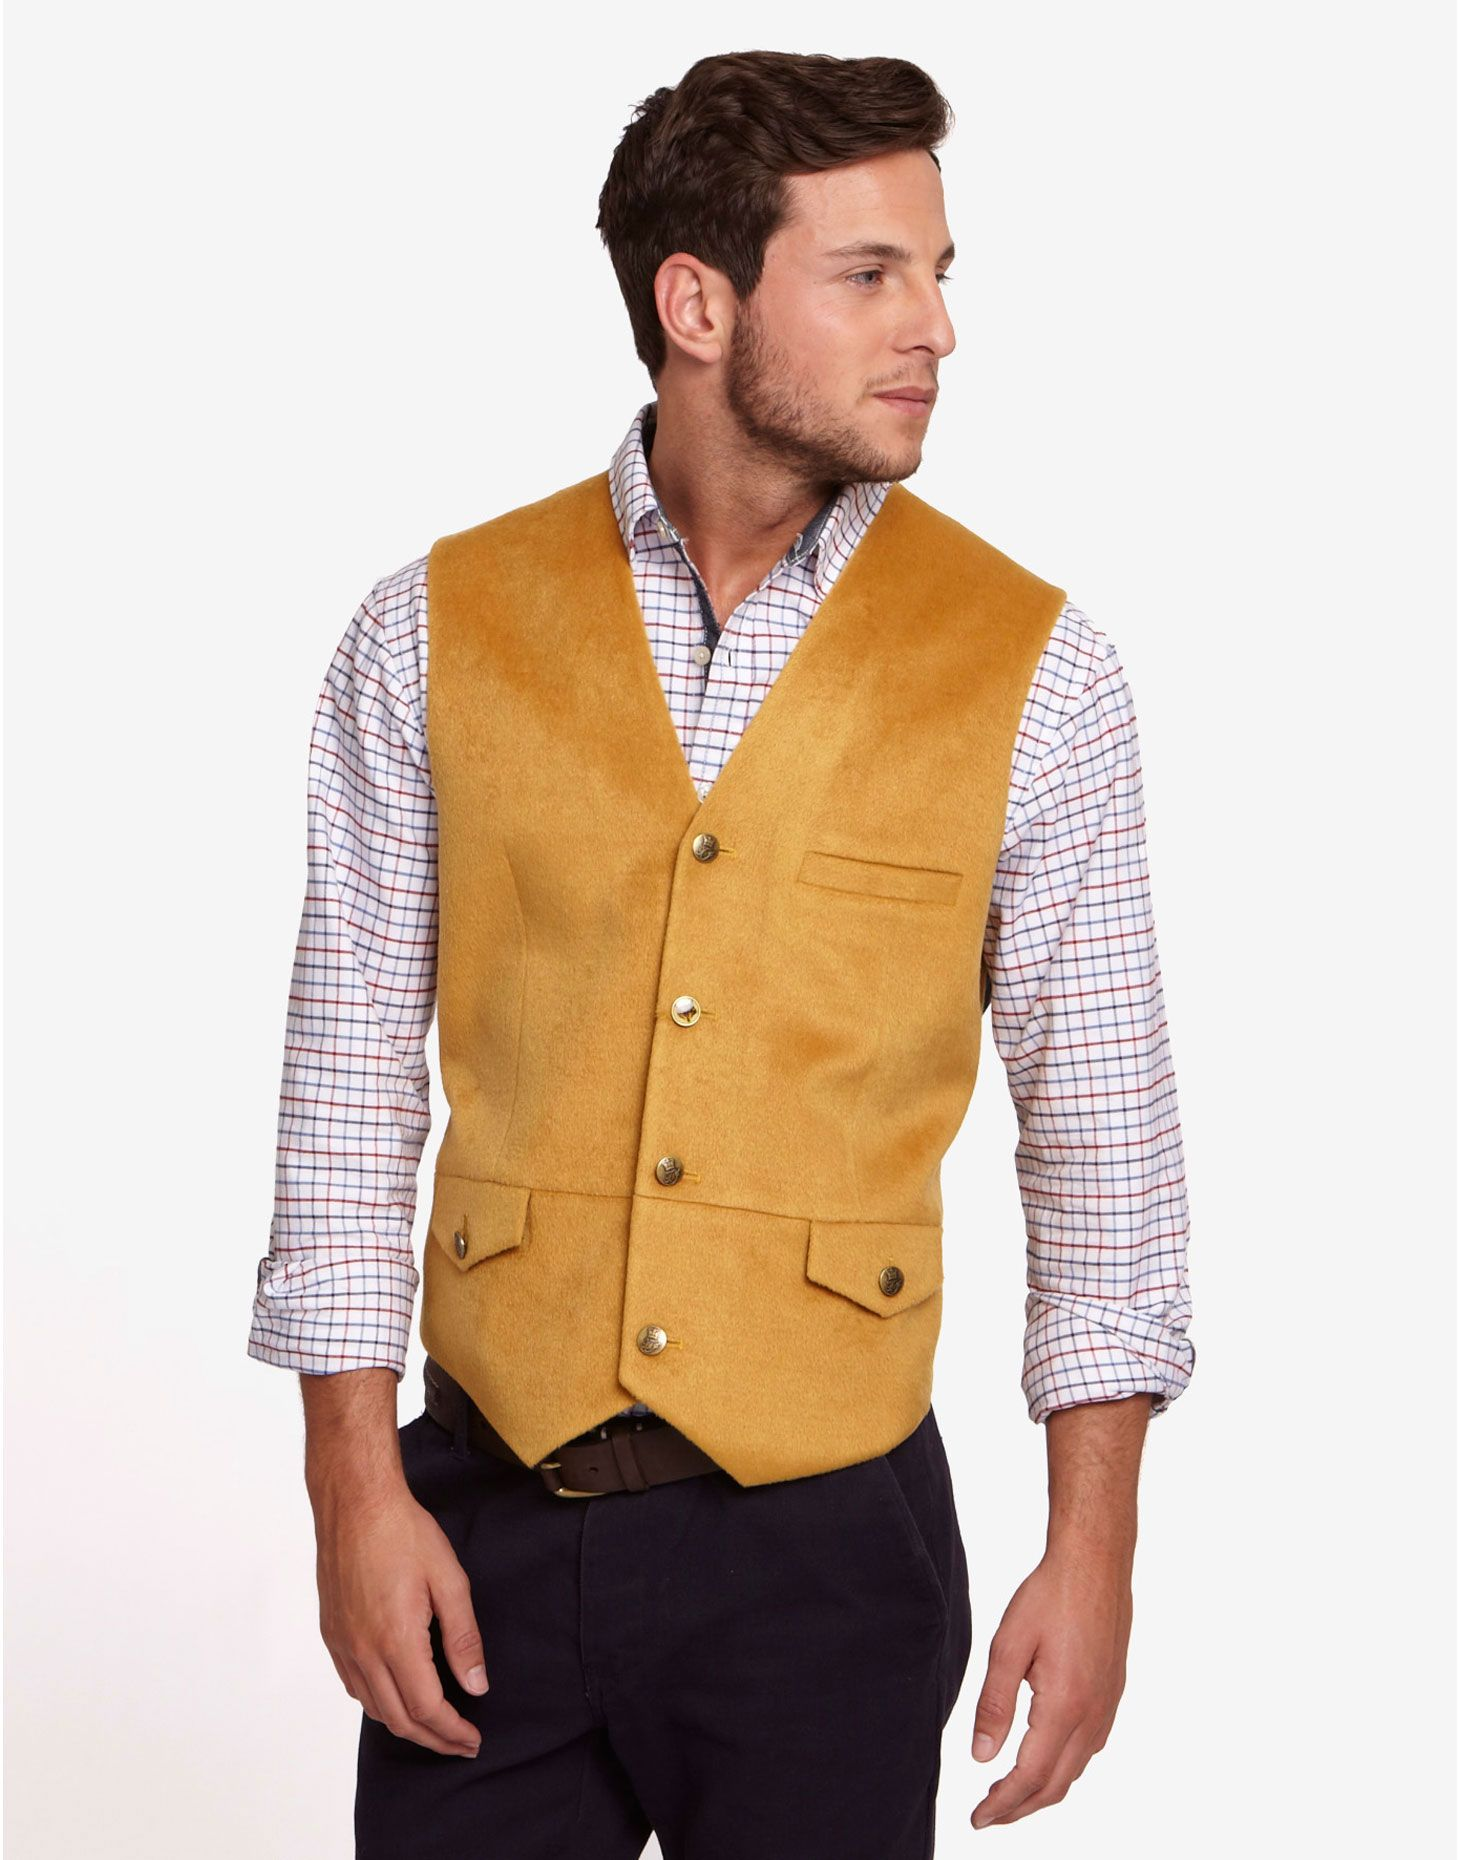 Mens Waistcoat Yellow Humphrey Mens Wear Pinterest Men 39 S Waistcoat Yellow And Search